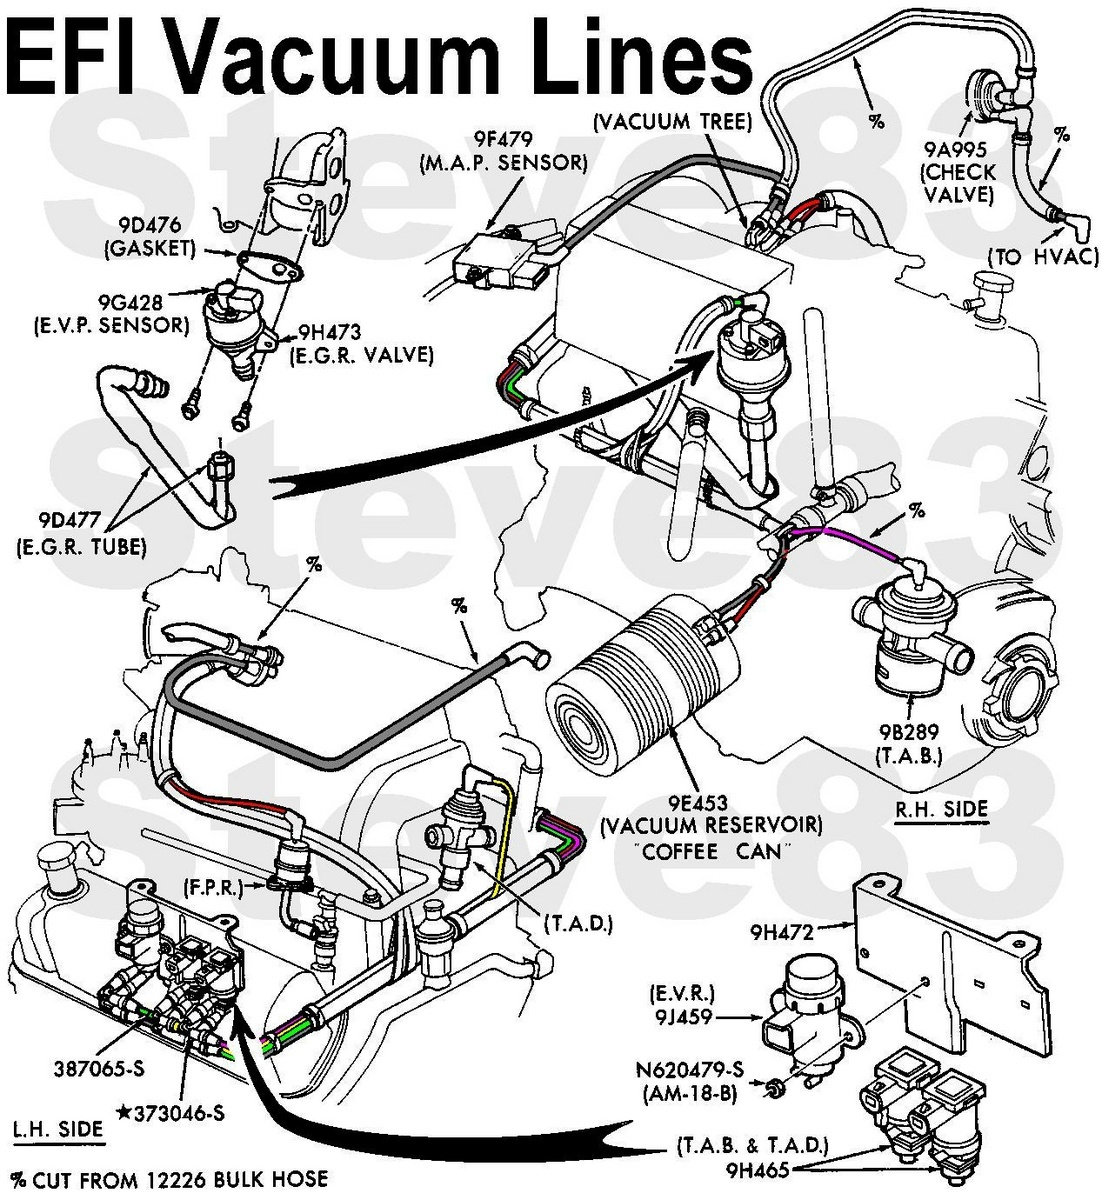 3s2sl Crankshaft Position Sensor 2006 F150 5 4 additionally 93 Mustang 5 0 Engine Diagram likewise T5547448 Firing order diagram 289 motor additionally Volkswagen Jetta 2 8 1988 Specs And Images together with Dodge Durango Pcv Valve Location. on 02 ford 4 6 timing marks